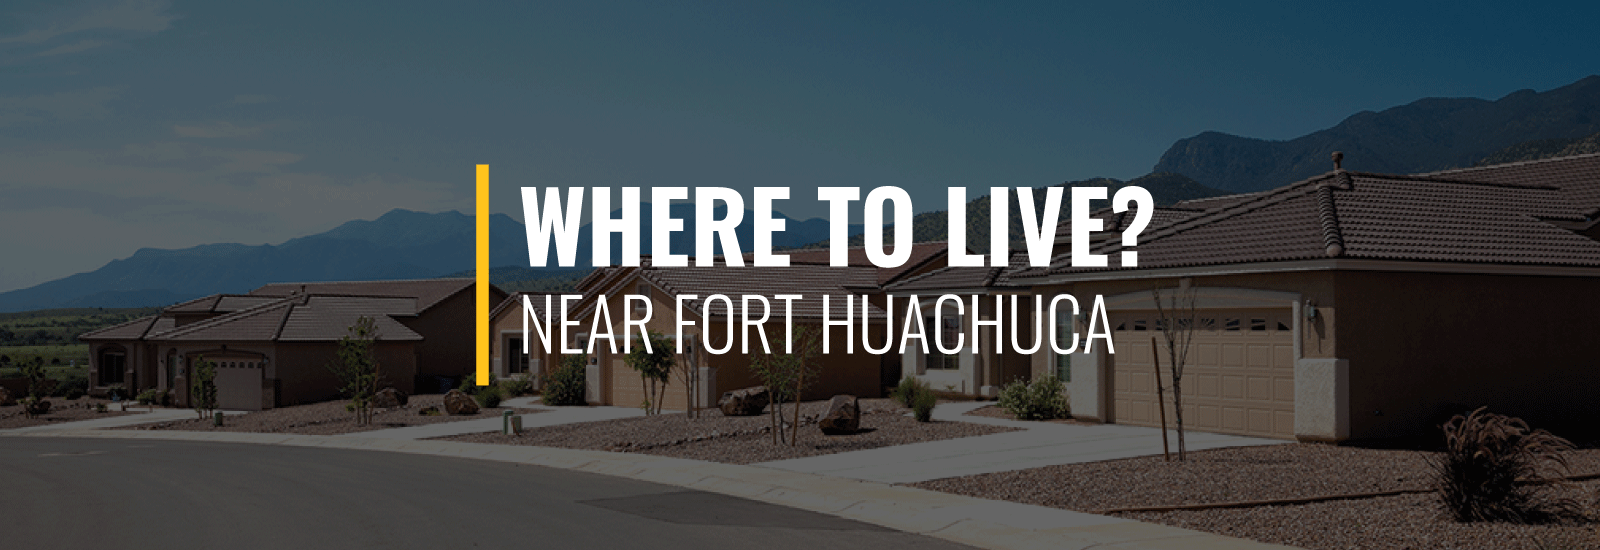 Where to Live Near Fort Huachuca?